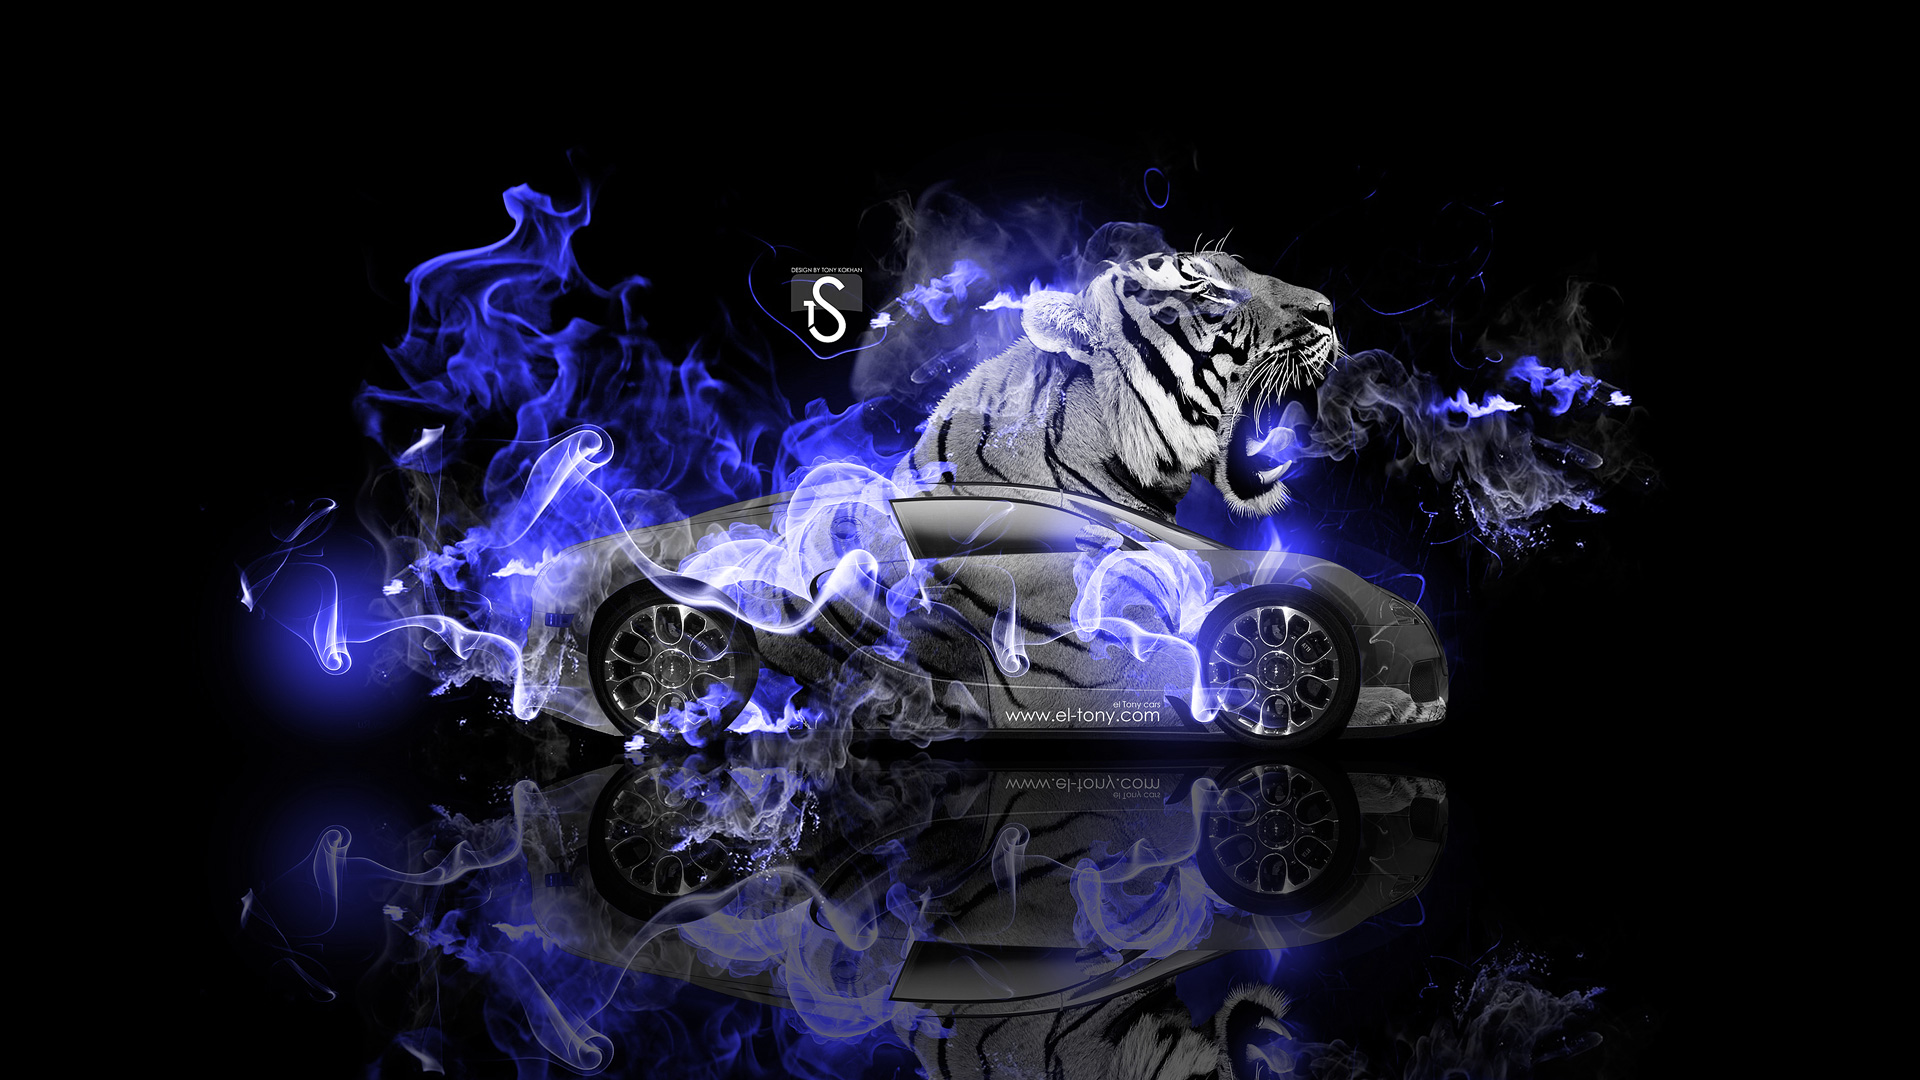 Exceptionnel Bugatti Veyron Fantasy Tiger Blue Fire Car 2014